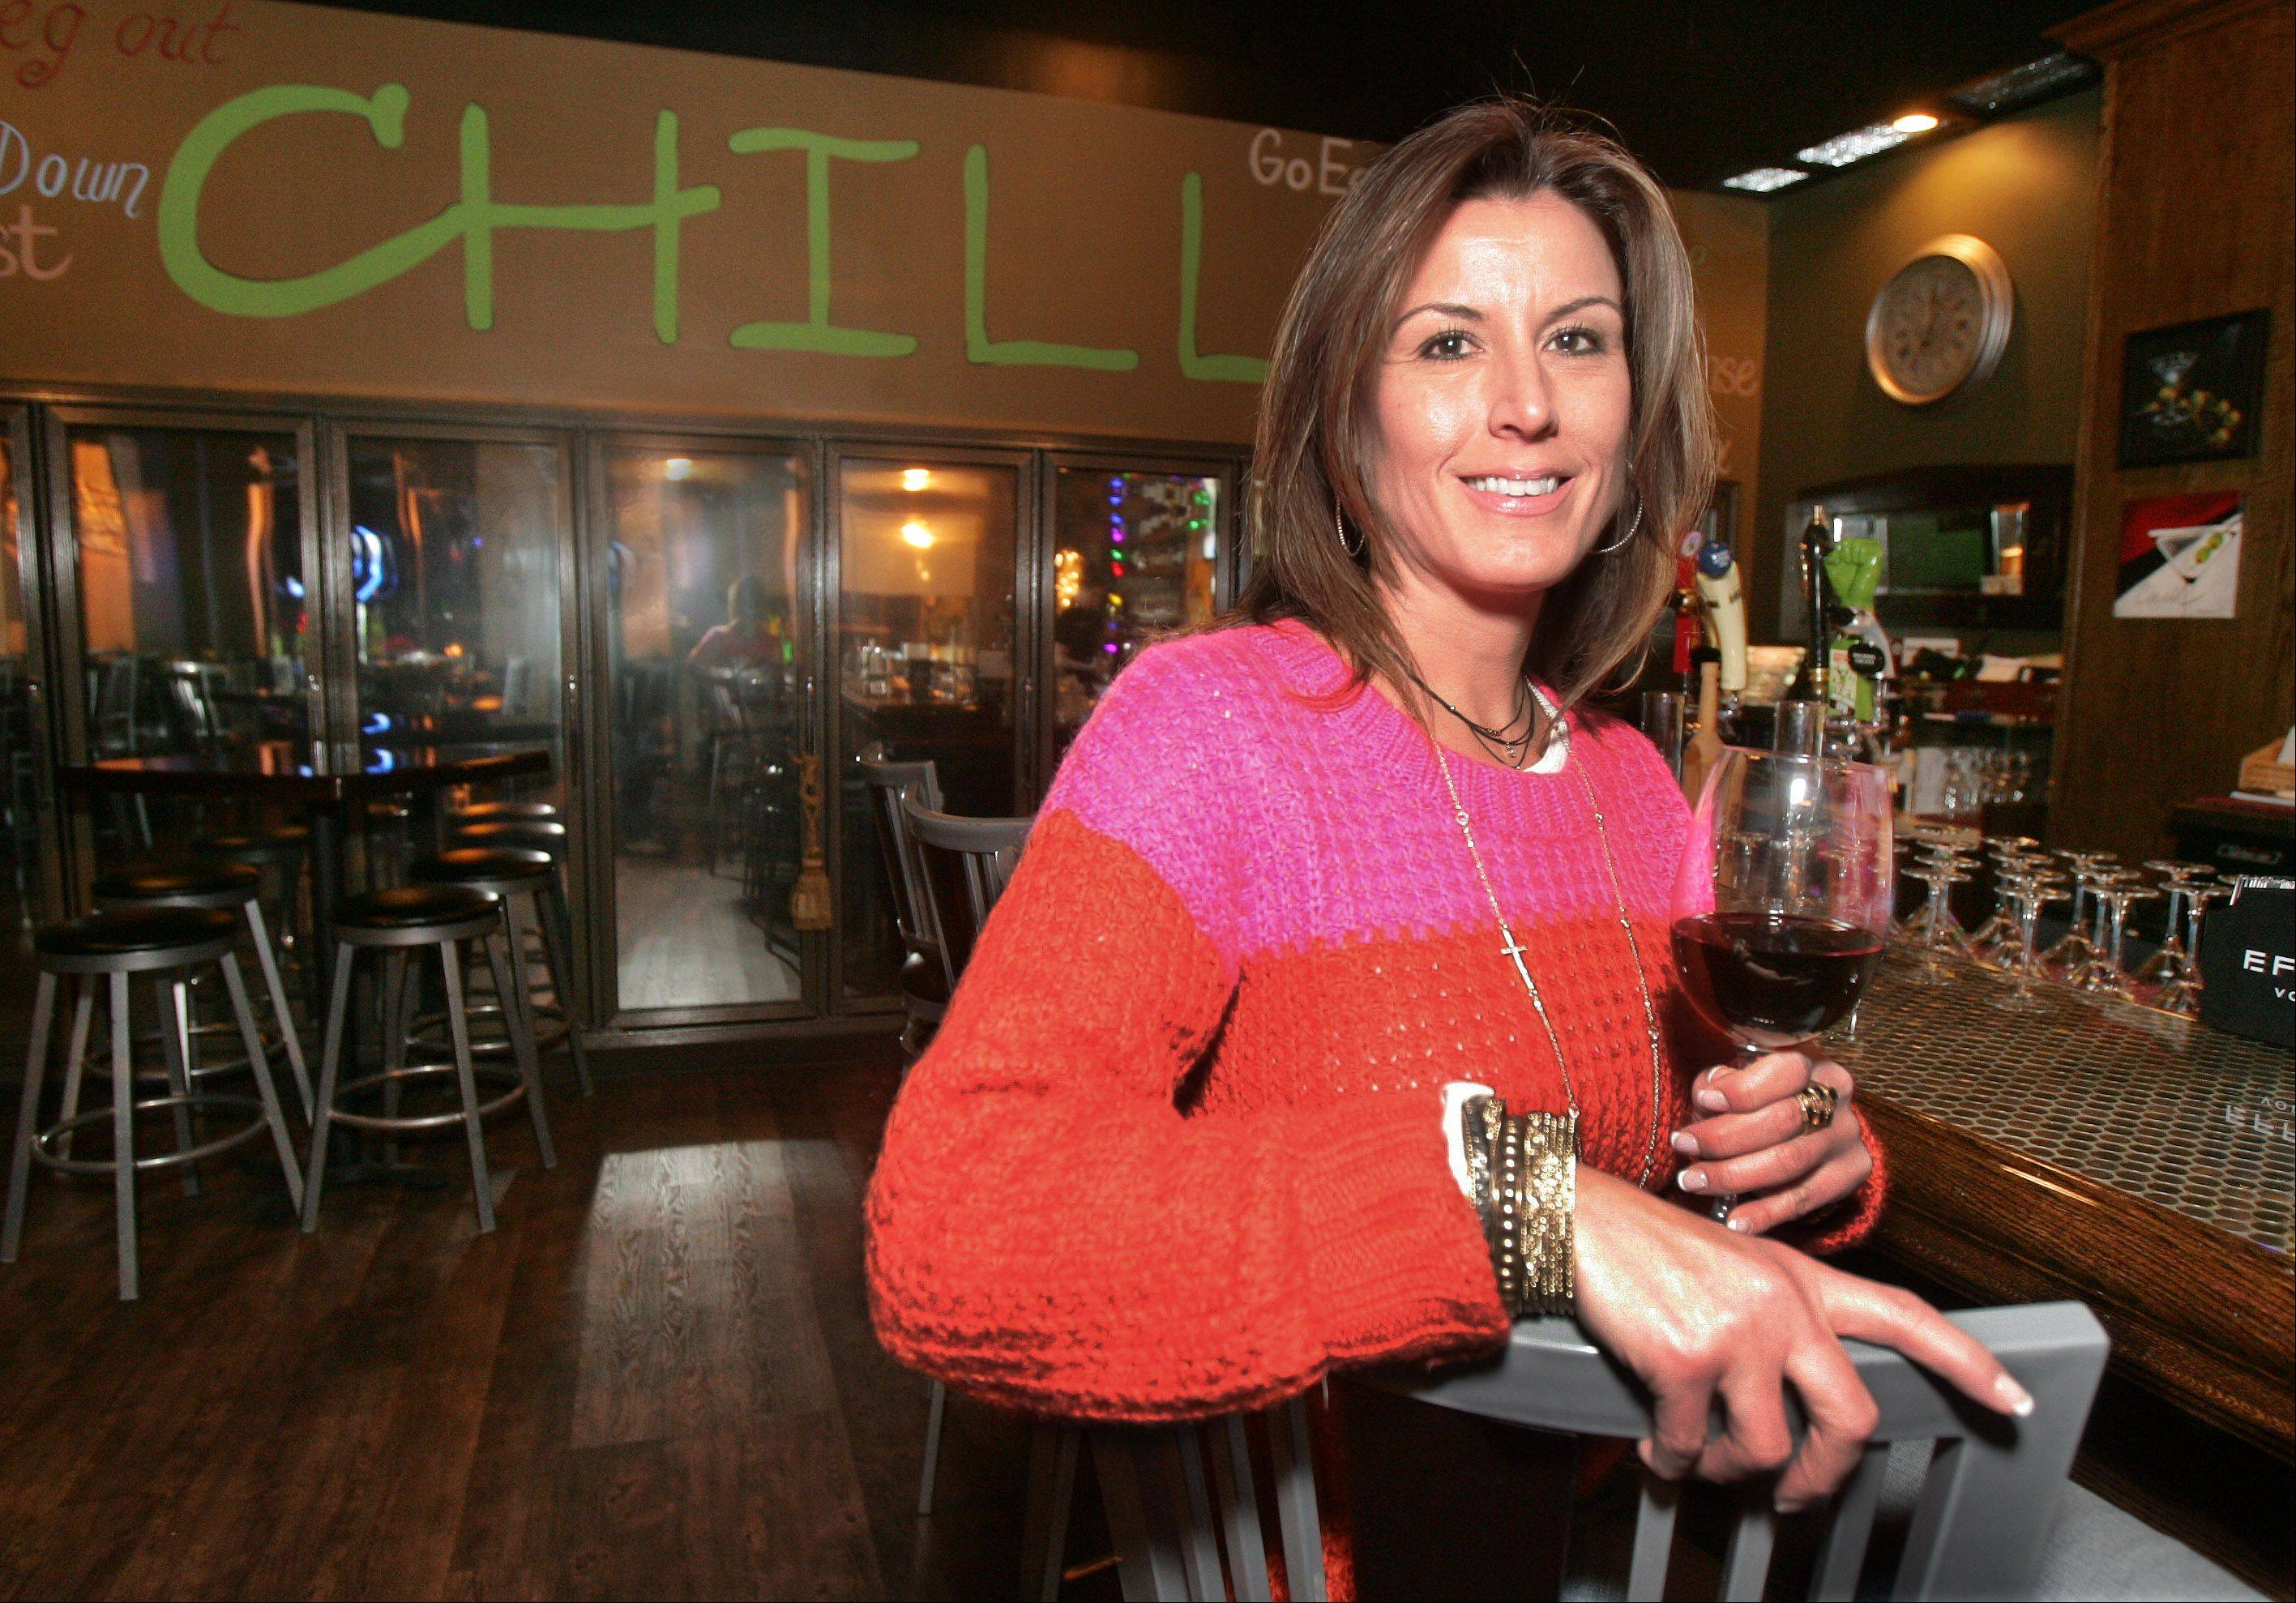 Owner Denise Just opened the Chill Martini & Wine Bar last year in Lake Villa.